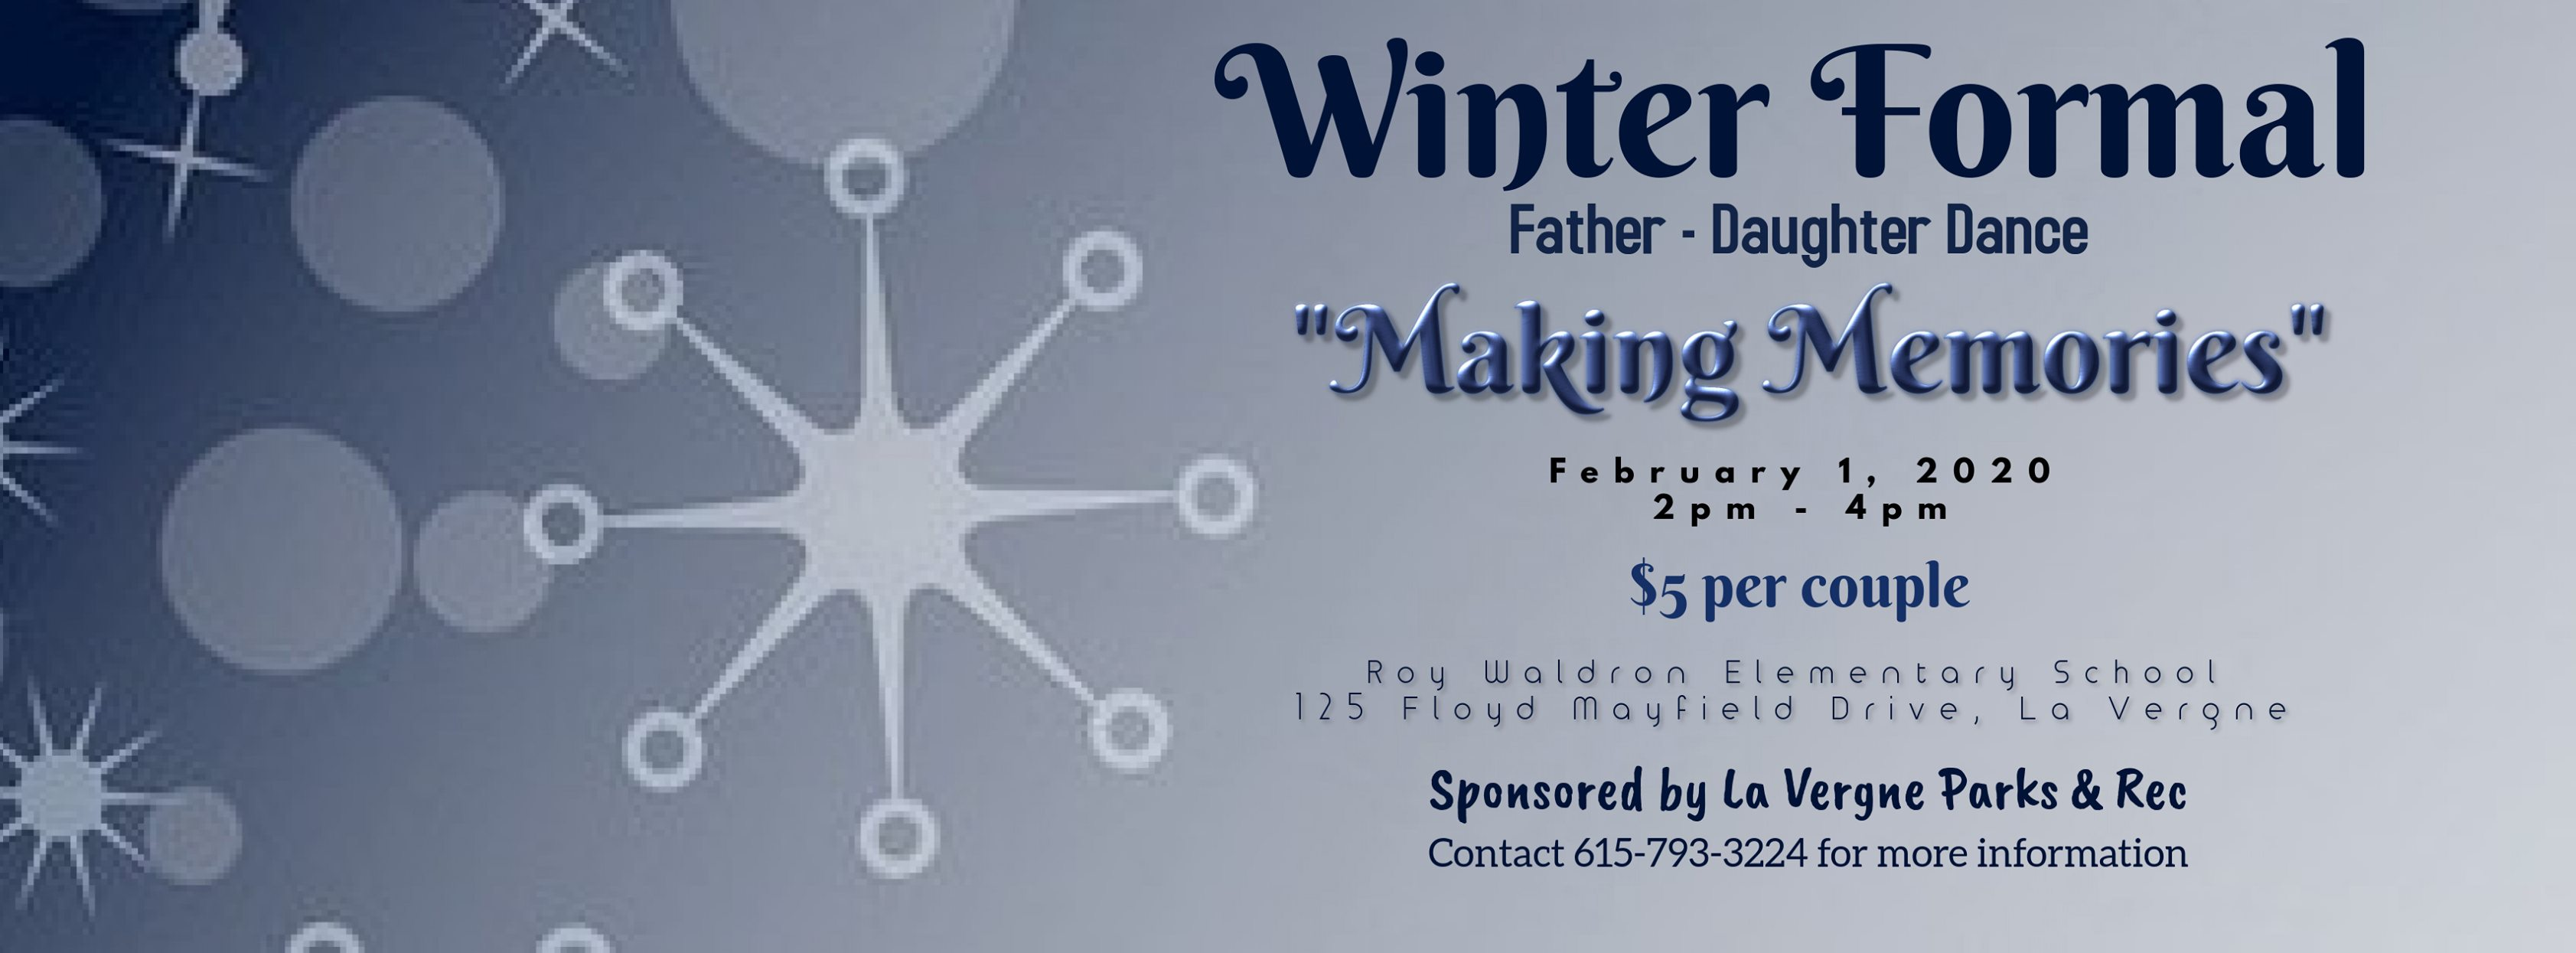 Father Daughter Dance in Rutherford County on Feb. 1